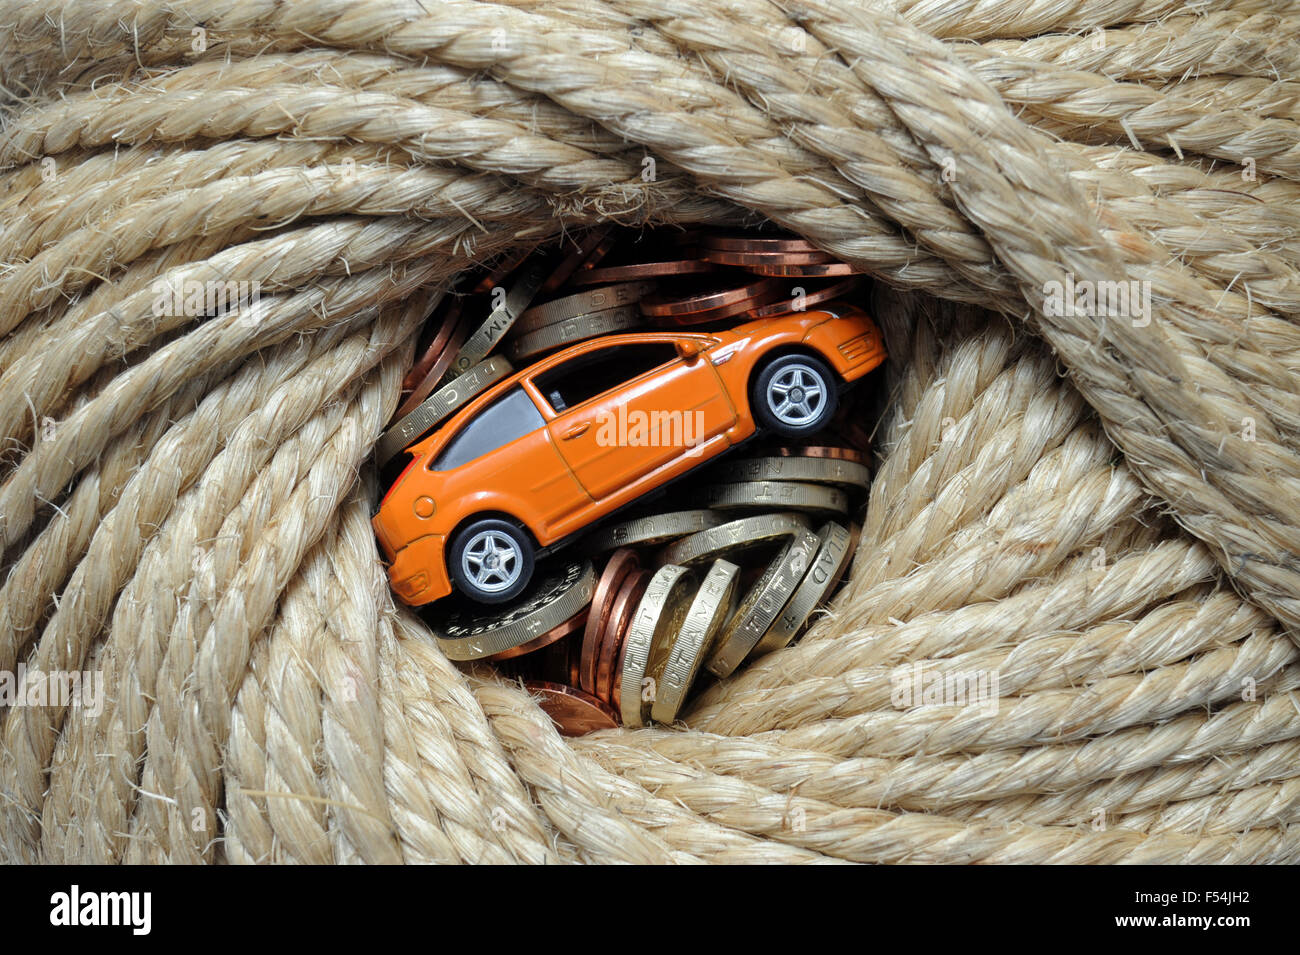 MODEL CAR WRAPPED IN ROPE WITH MONEY RE CARS MOTORING COSTS PRICES ...